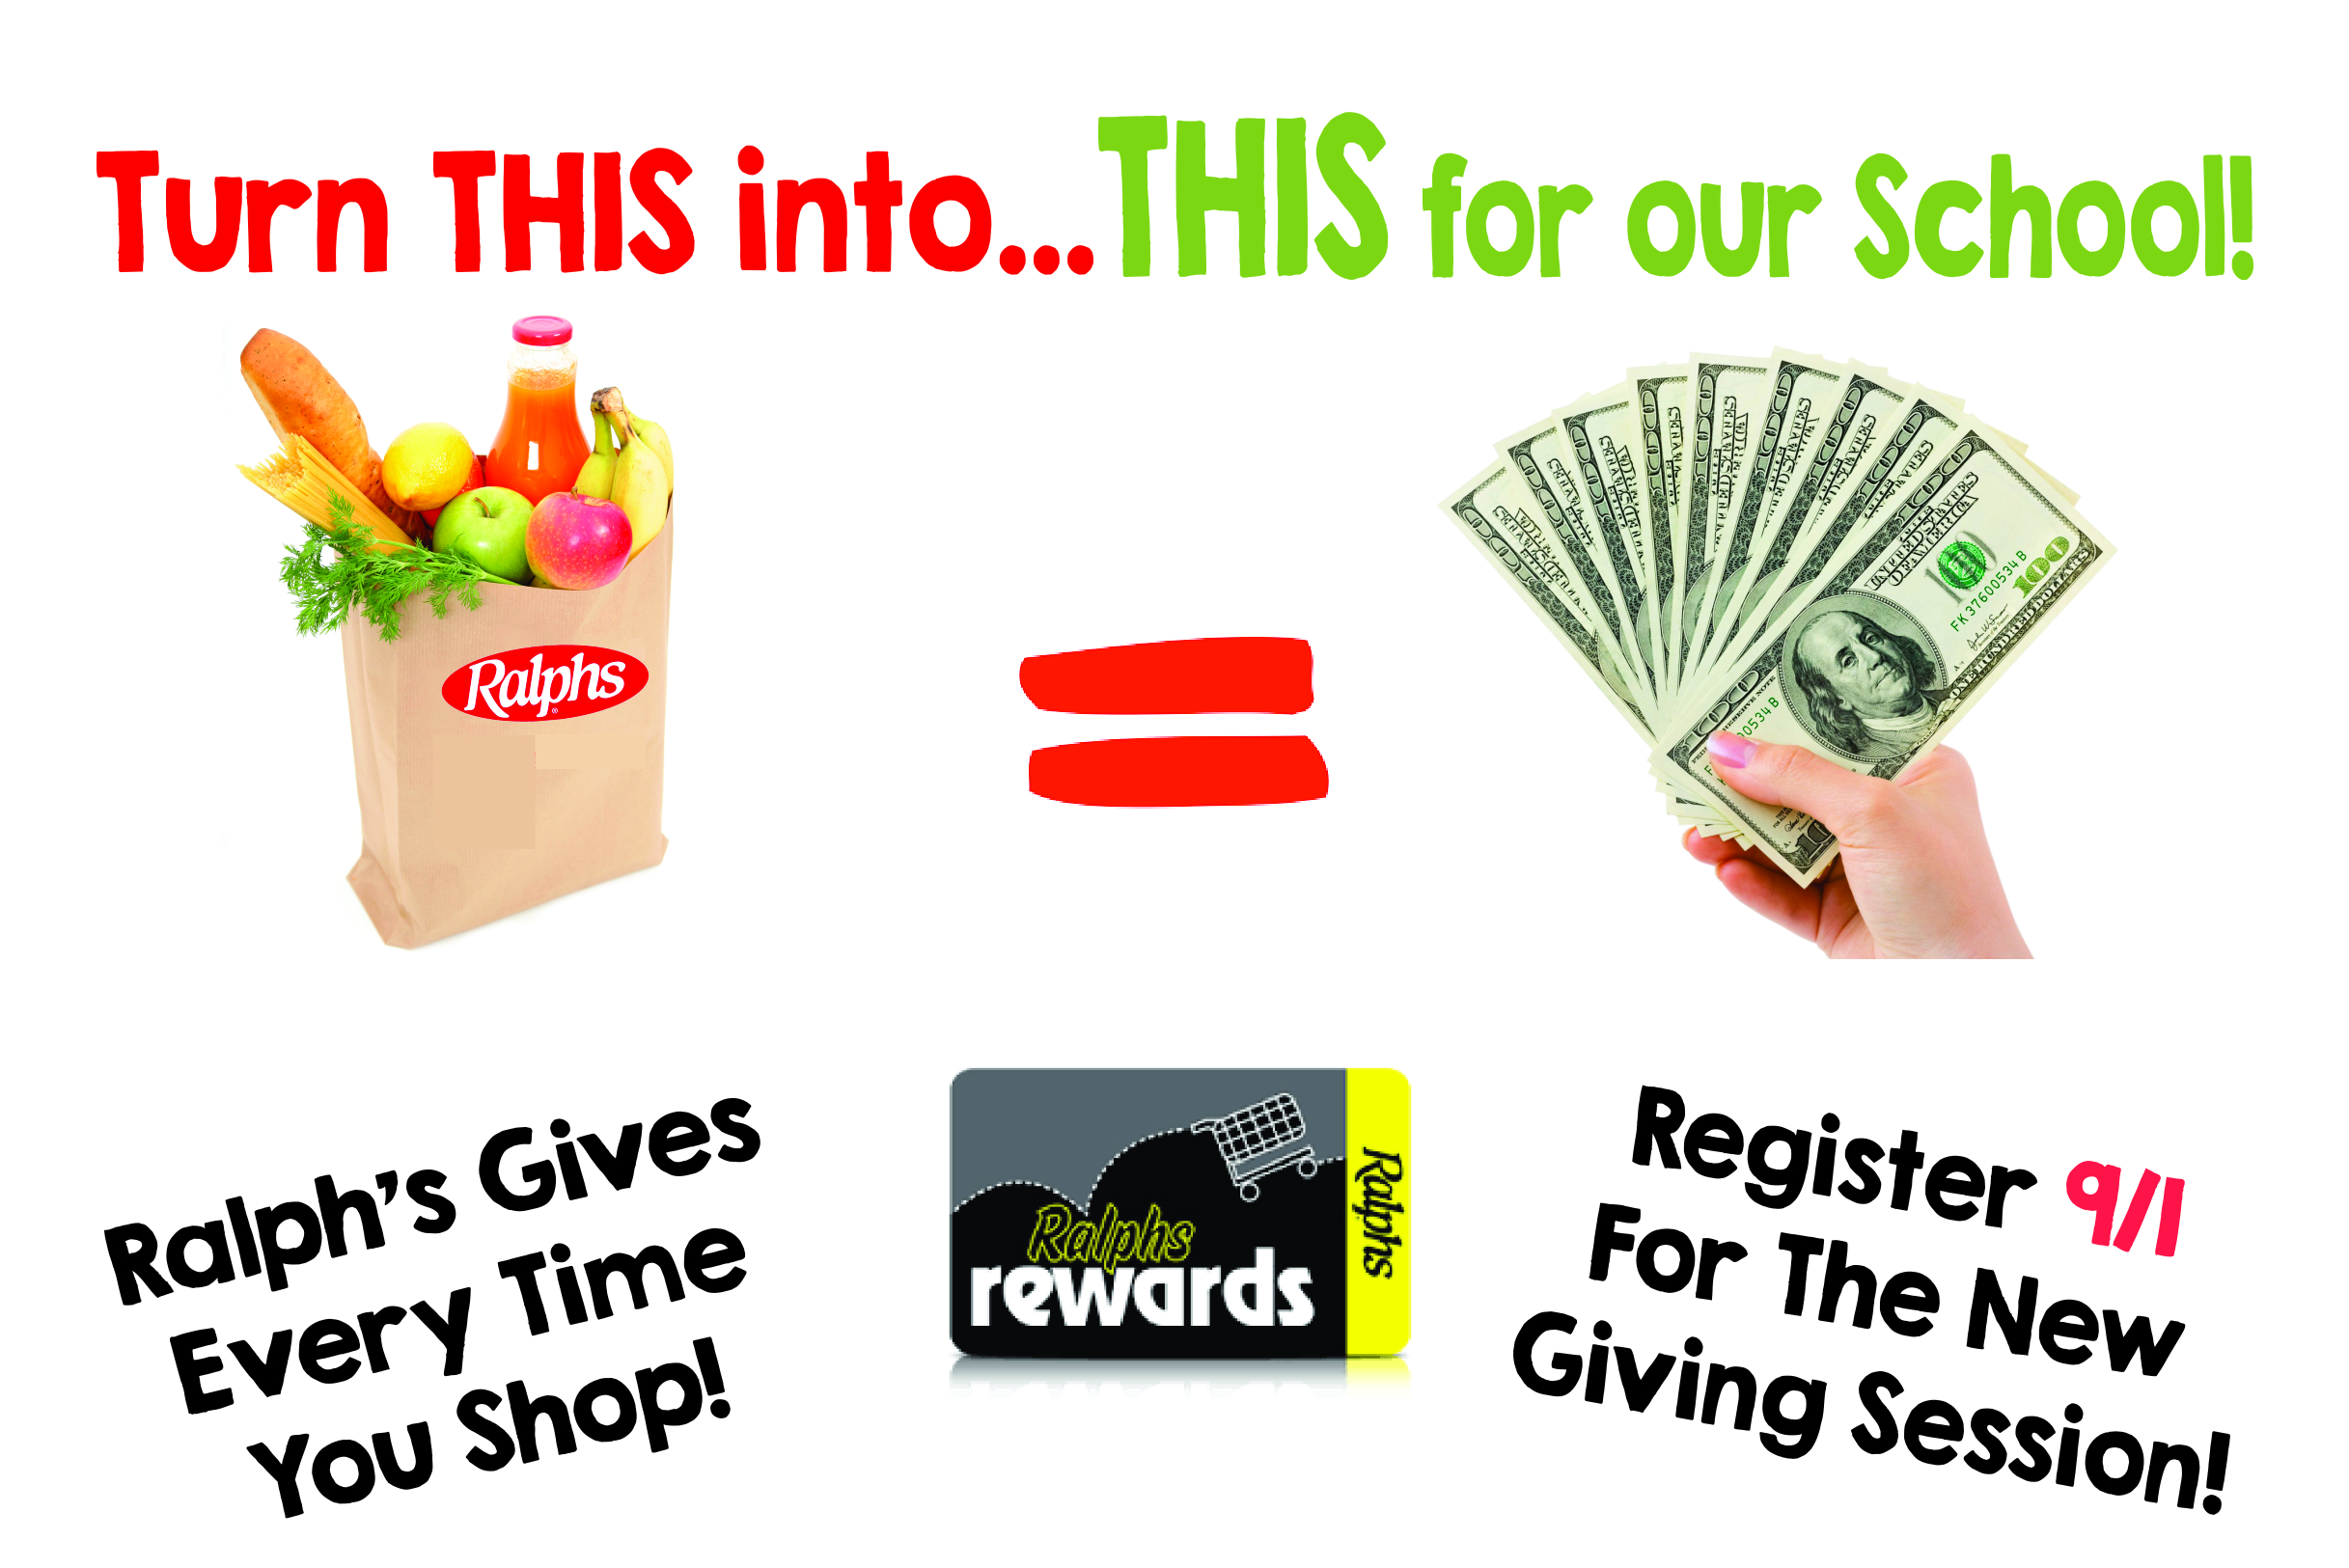 Ralphs Rewards!